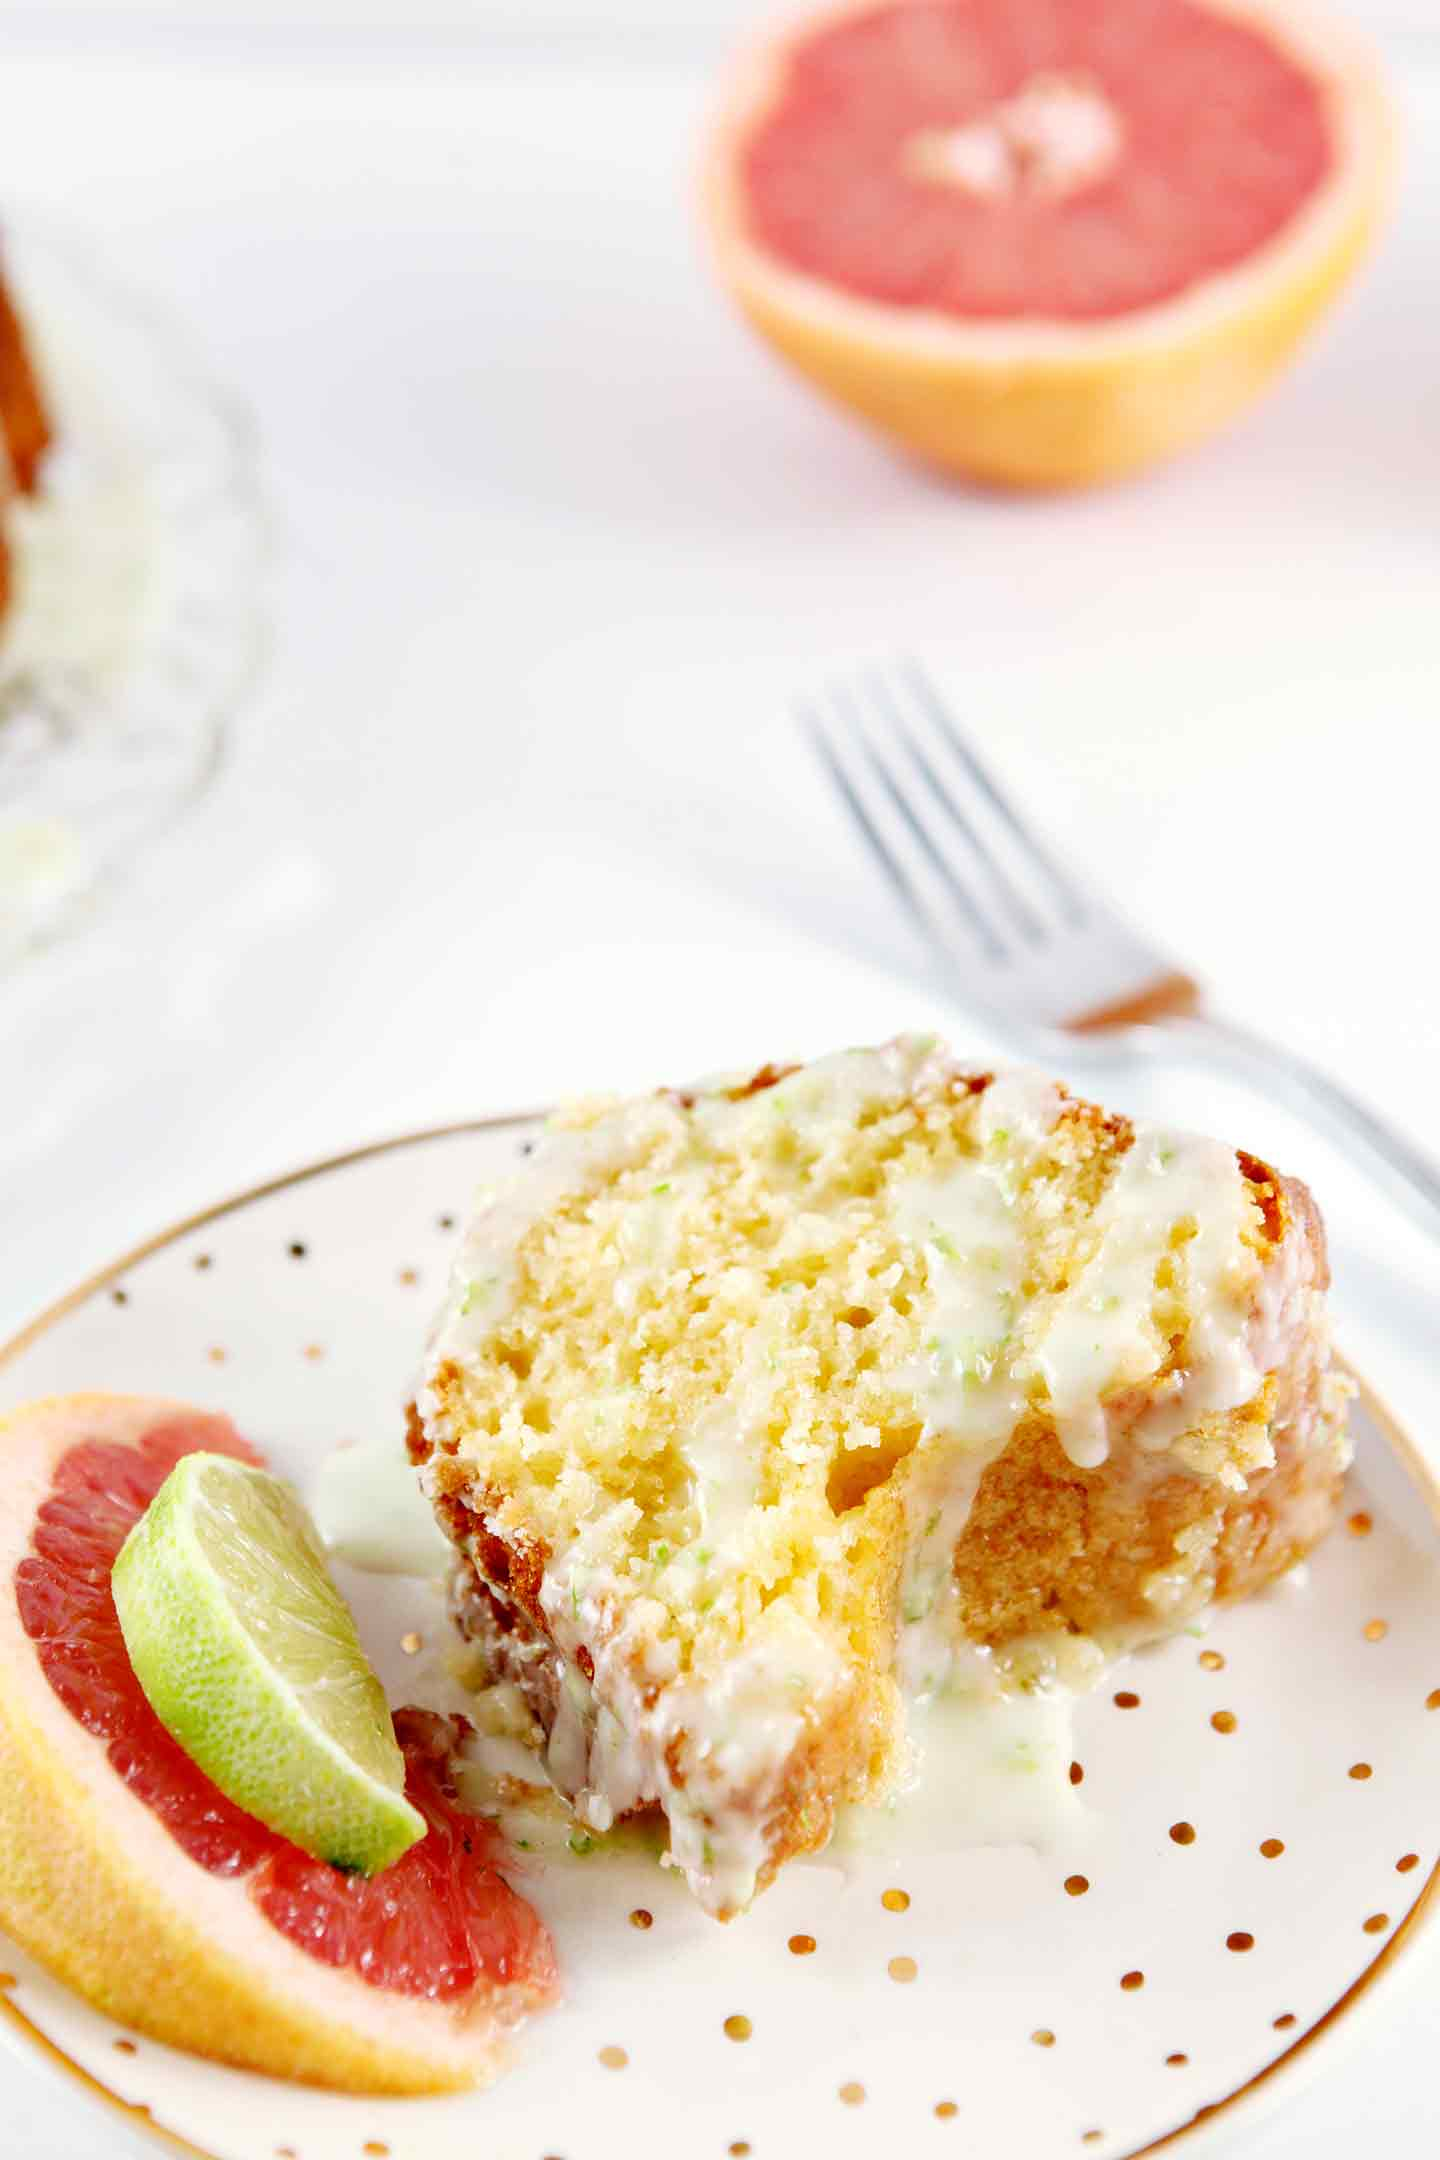 Grapefruit lovers, rejoice, and bake a dairy-free Paloma Citrus Cake with Tequila-Lime Glaze immediately! This dense baked good, inspired by the classic tequila, lime and grapefruit Paloma cocktail, makes a perfect dessert for any occasion and feeds a crowd. Whether you're hosting a party or enjoying a weeknight by your lonesome, this citrusy cake and its boozy glaze are a delicious treat. All you need are simple baking supplies and grapefruit juice!